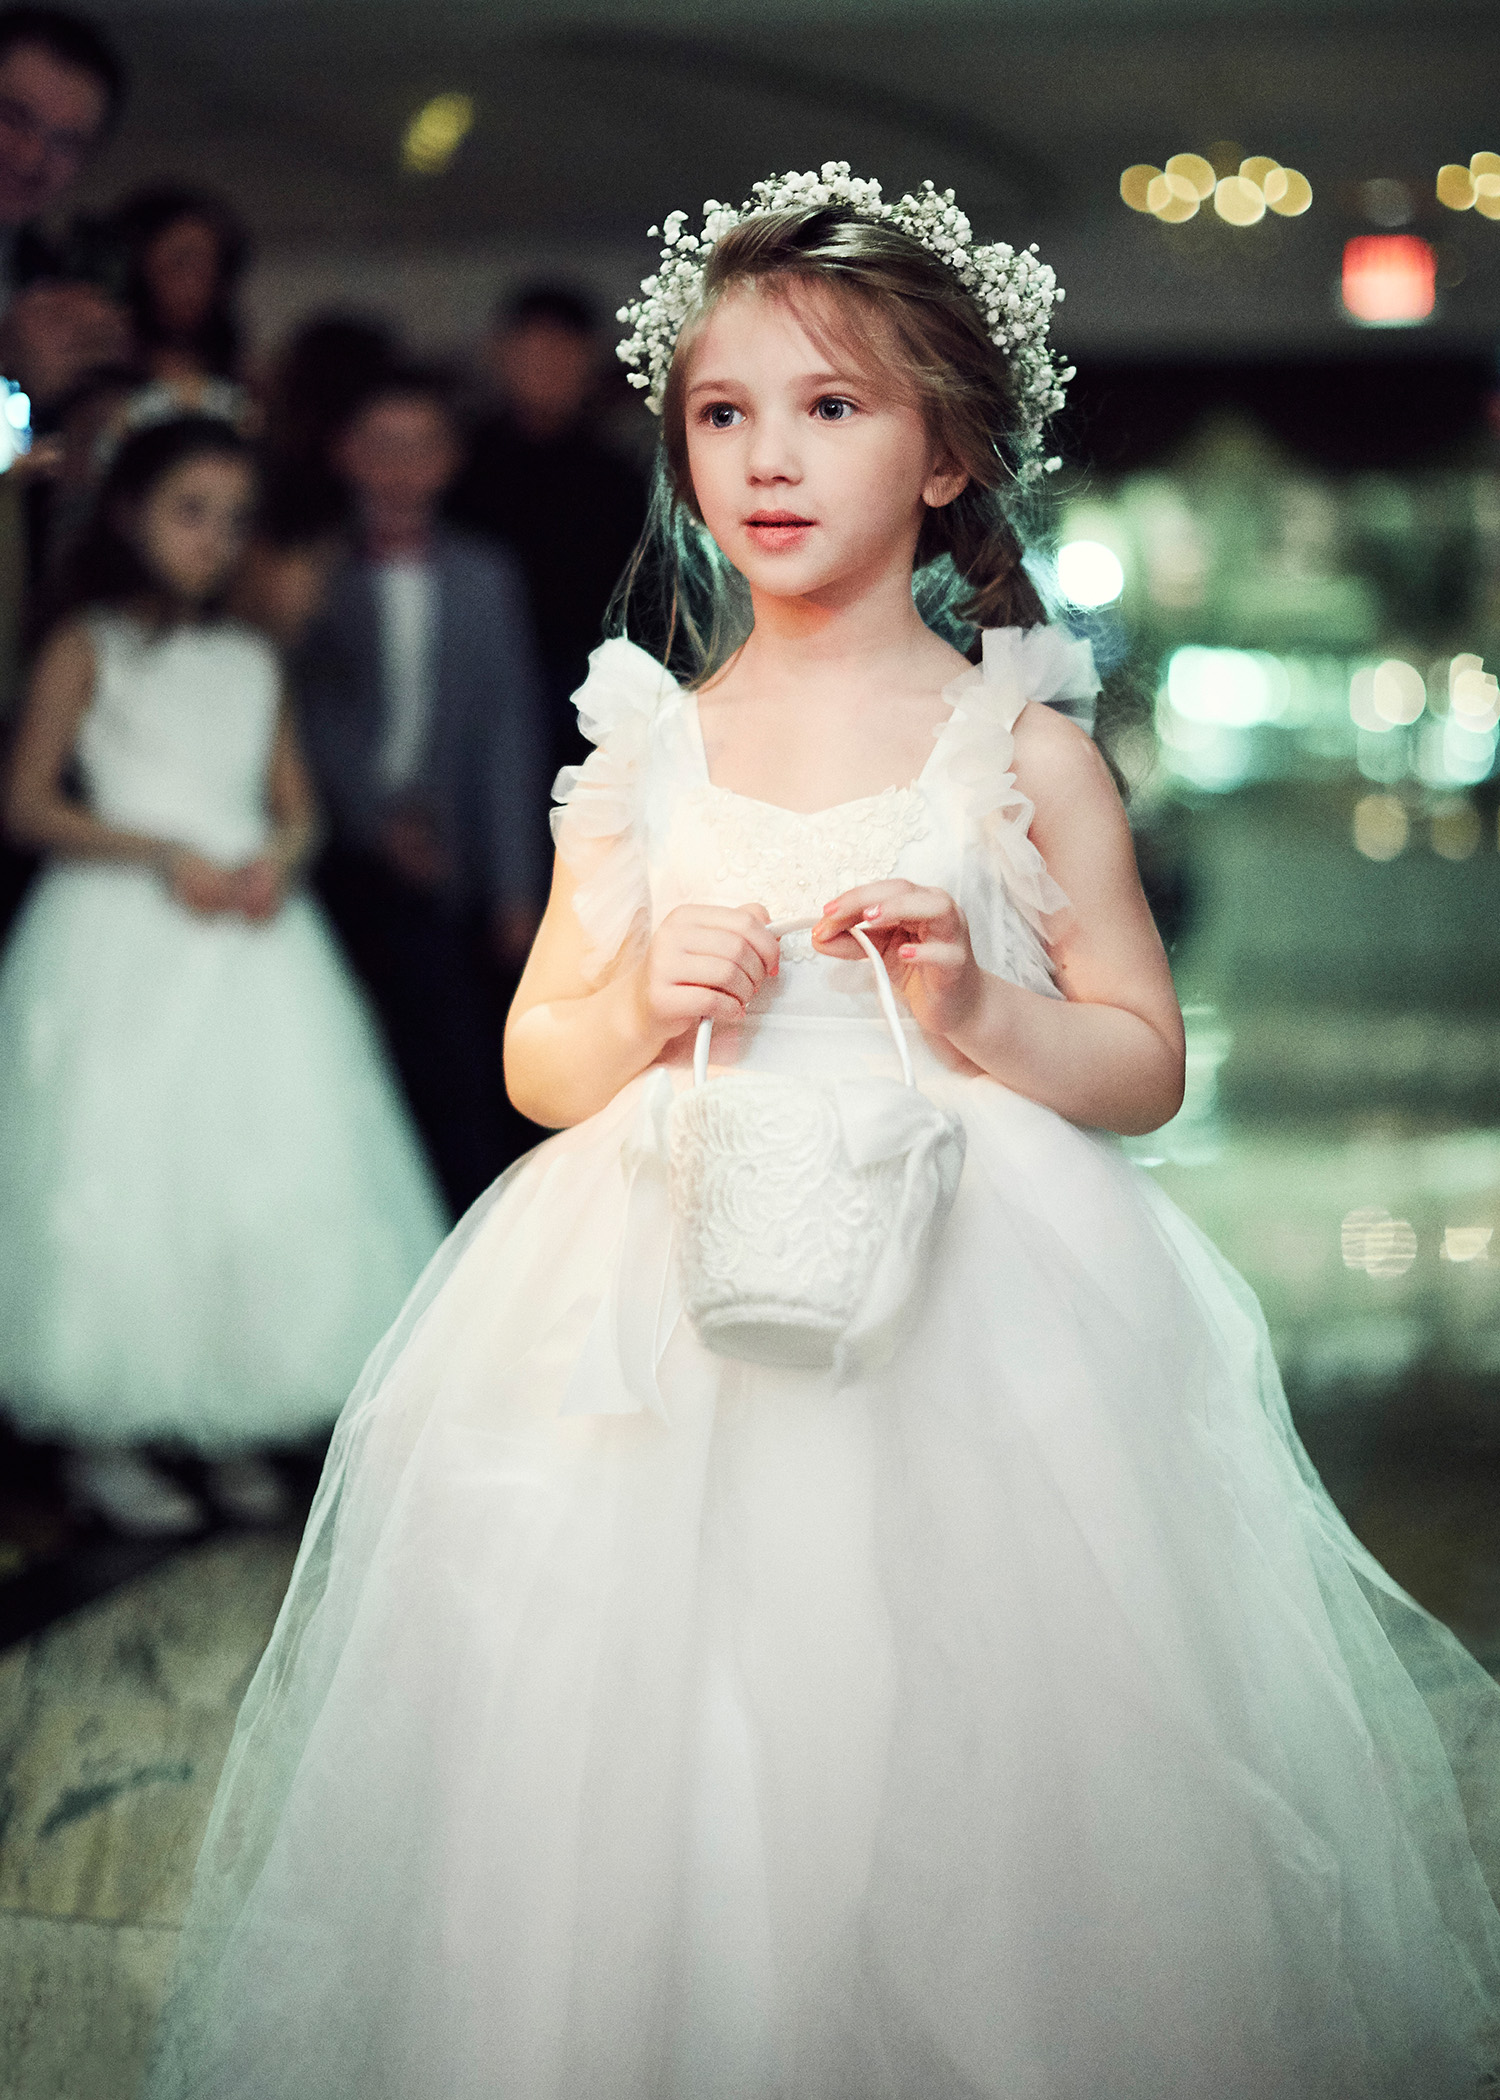 shqipe zenel wedding flower girl